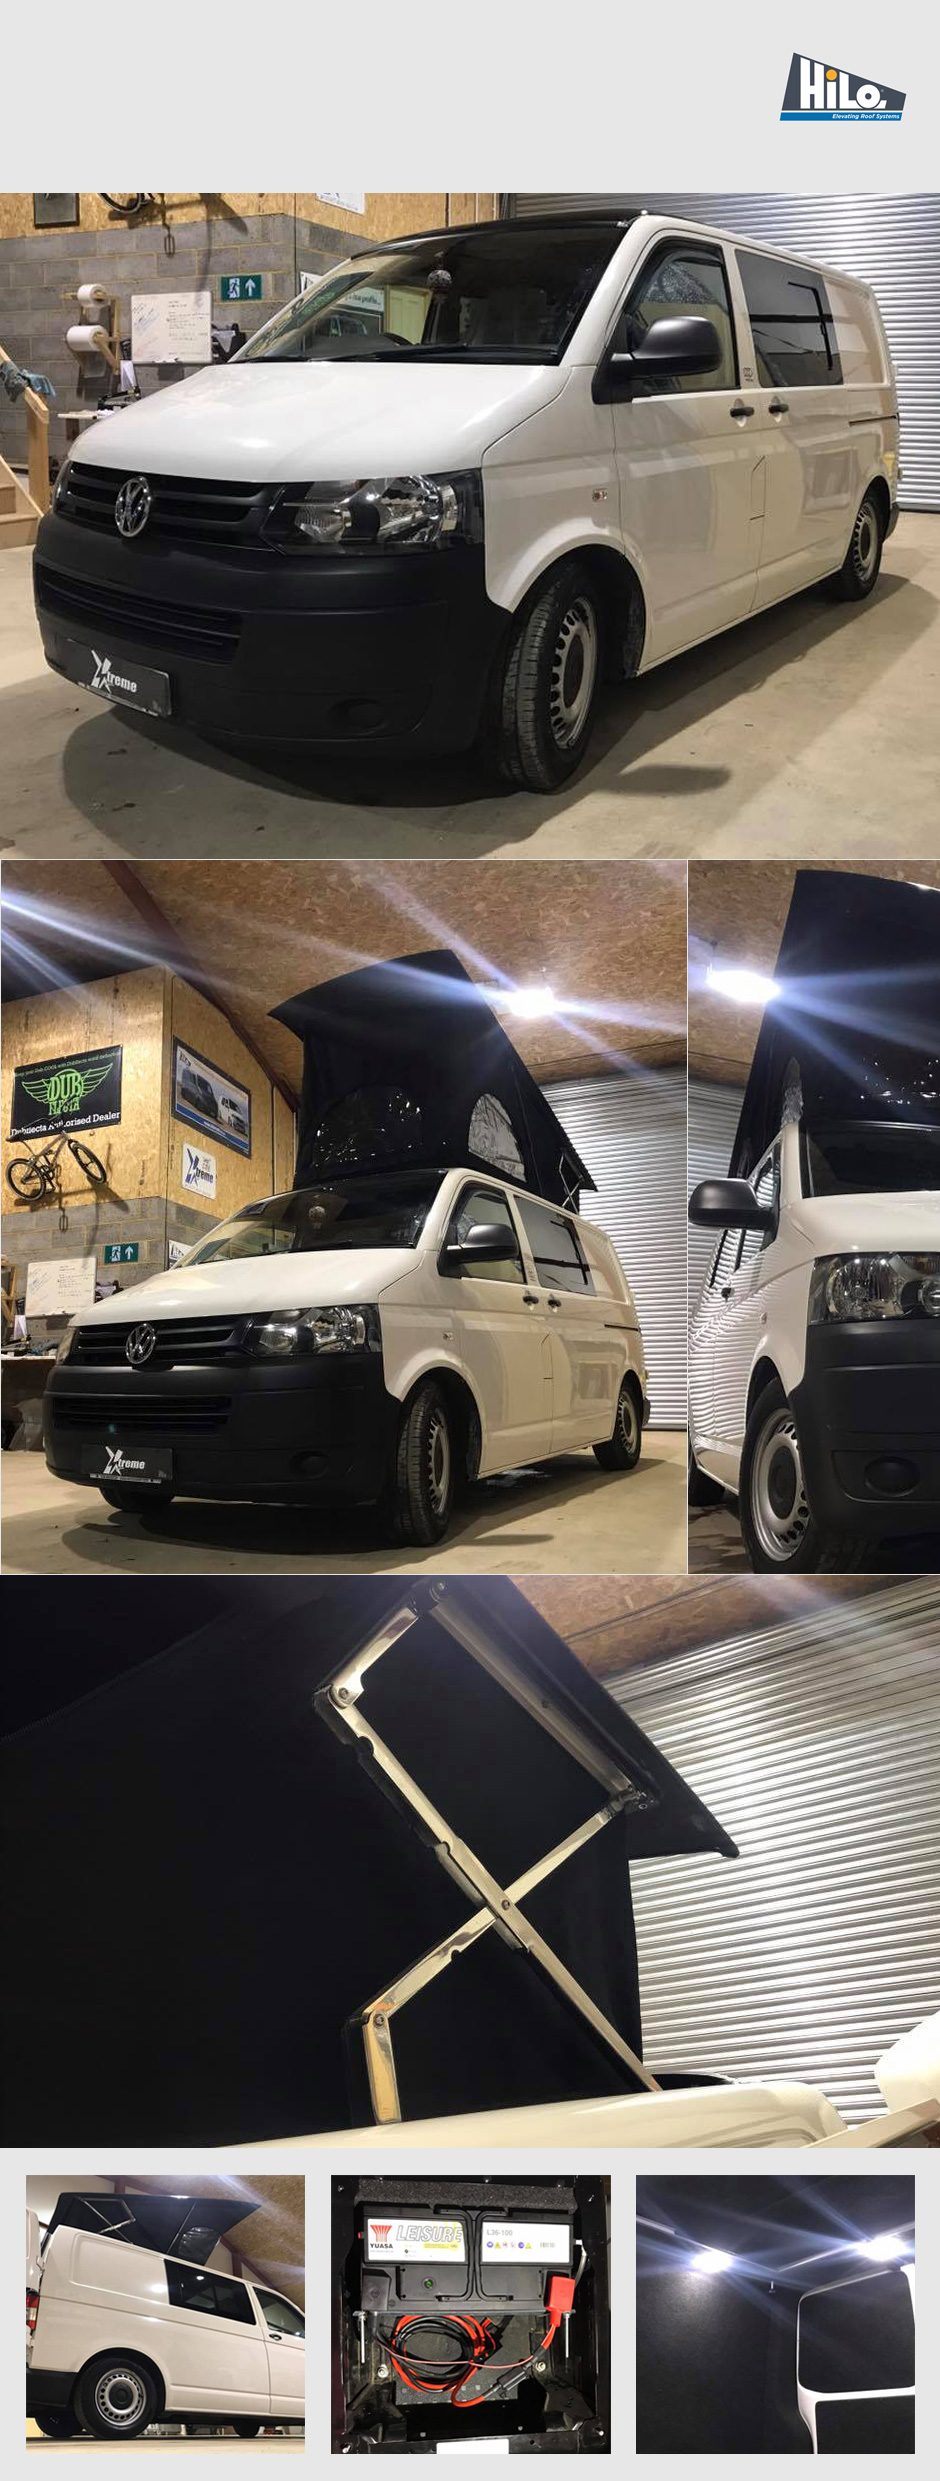 hilo roof fitters xtremevan vw conversions